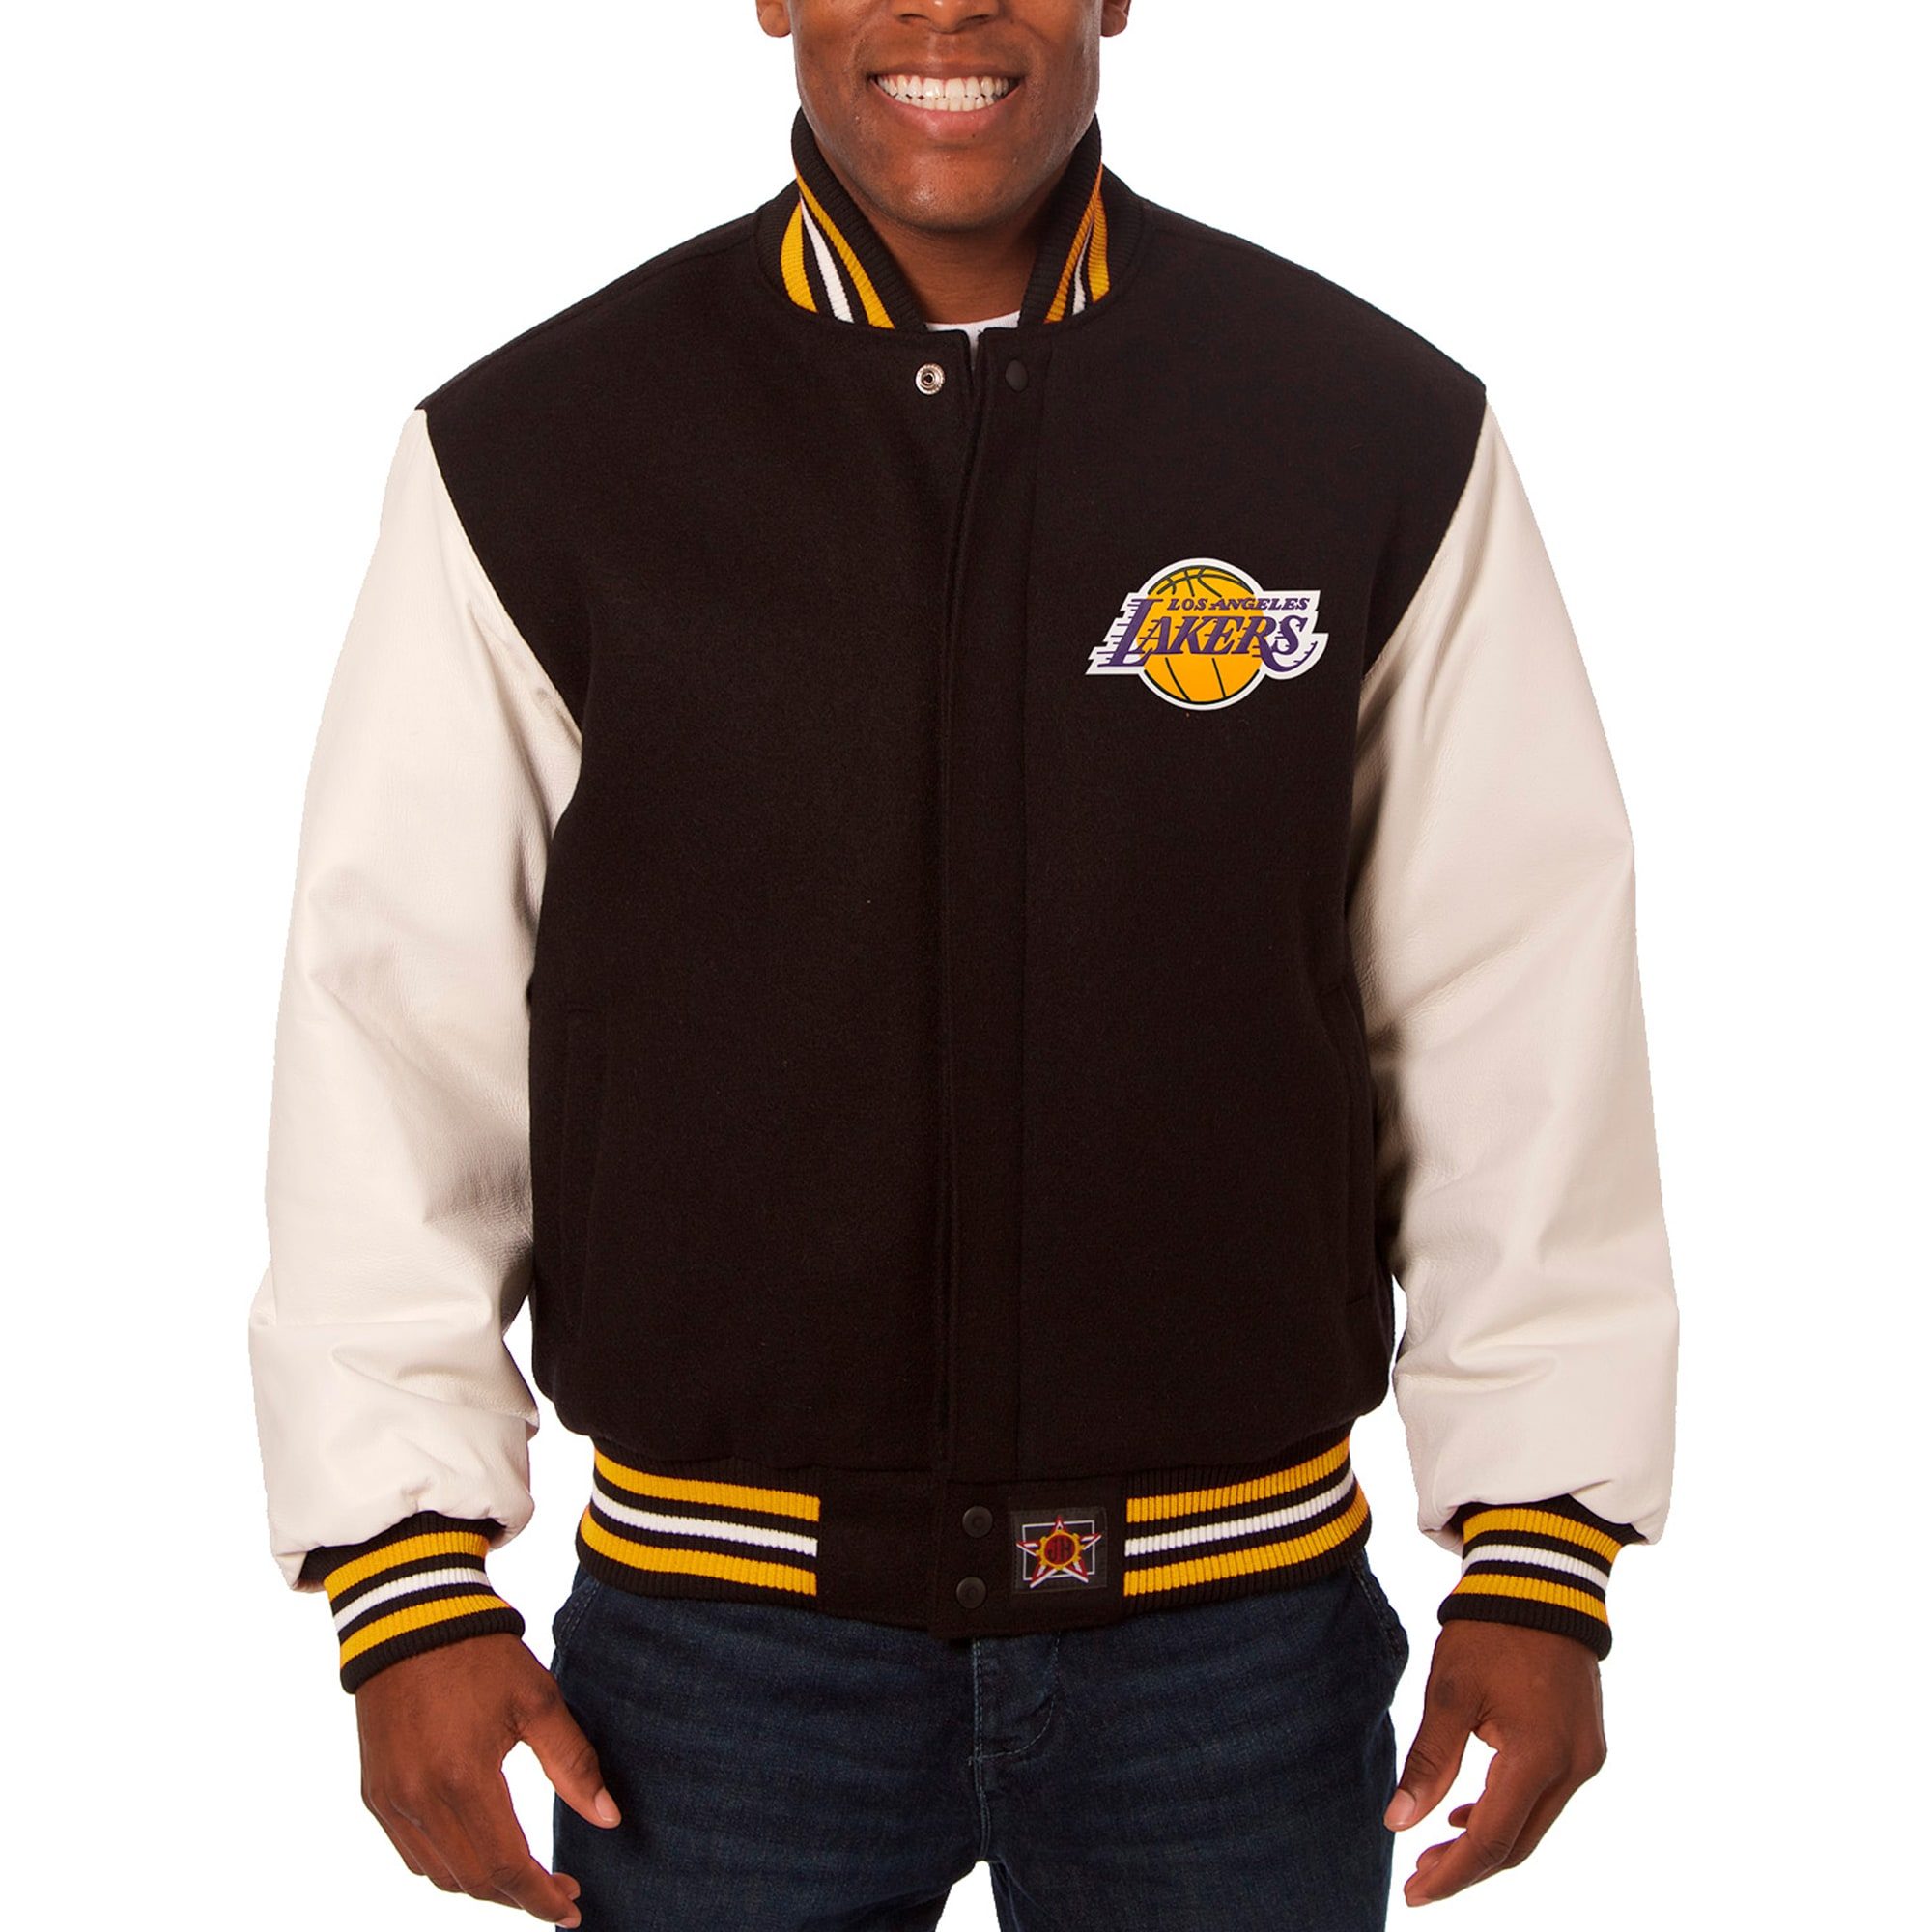 Los Angeles Lakers JH Design Big & Tall Wool & Leather Full-Snap Jacket - Black/White